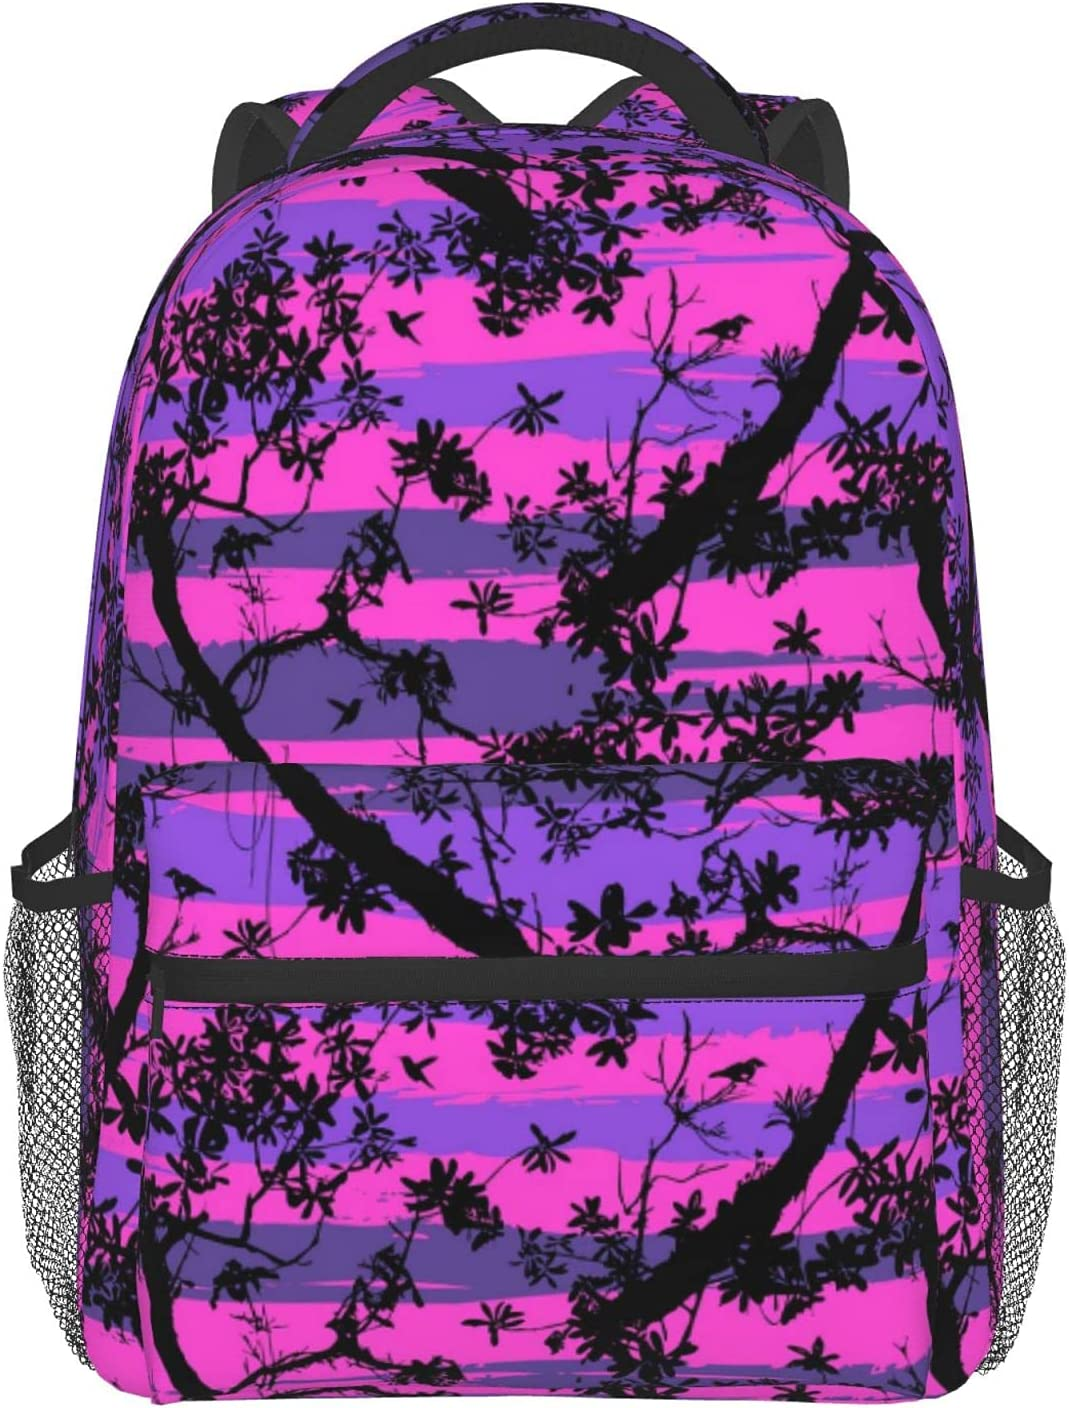 Floral And Tree Leaves Pattern School Lightweight Mini Backpacks Weekly Max 69% OFF update